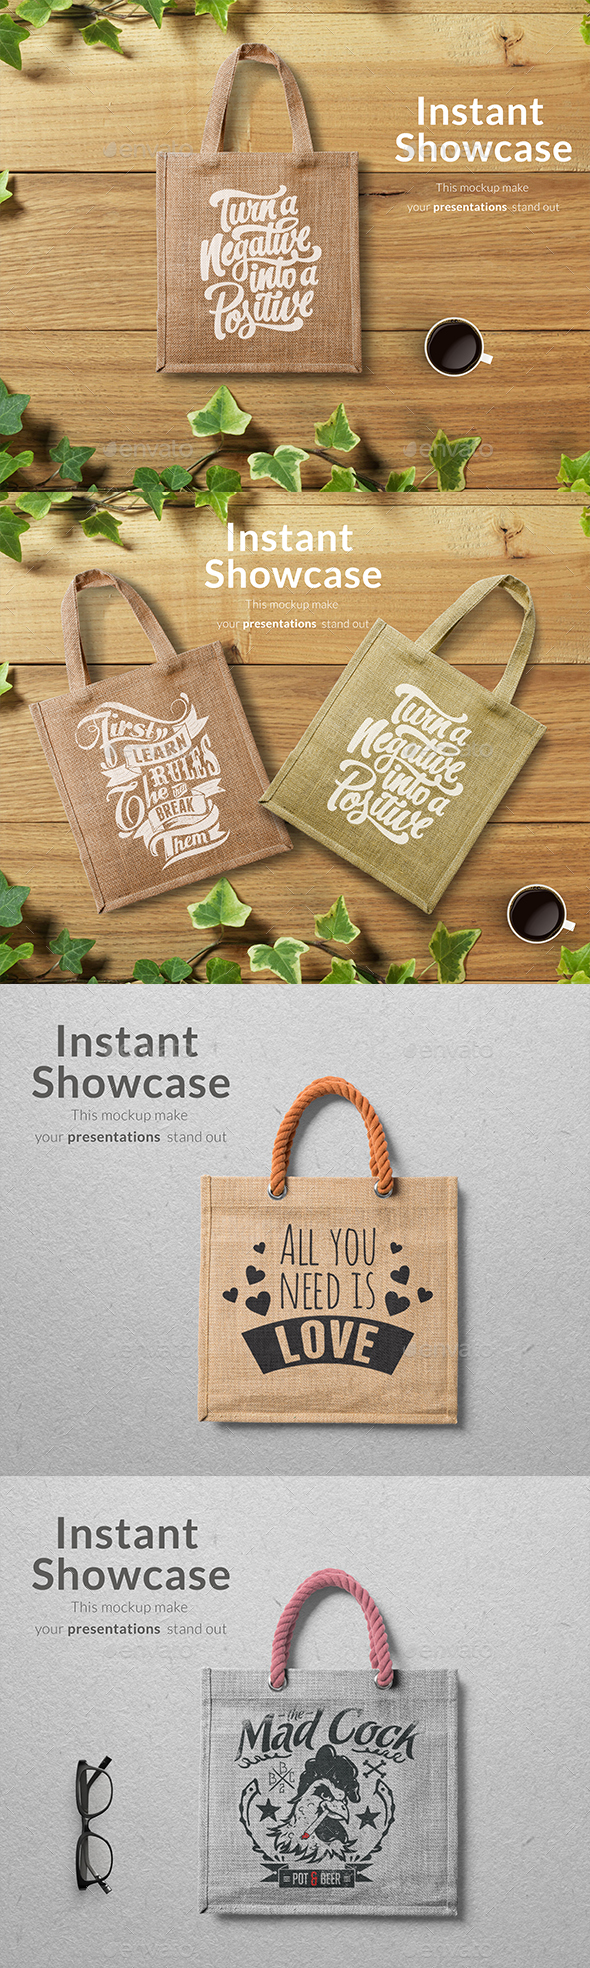 Eco Bag Mockup - Product Mock-Ups Graphics